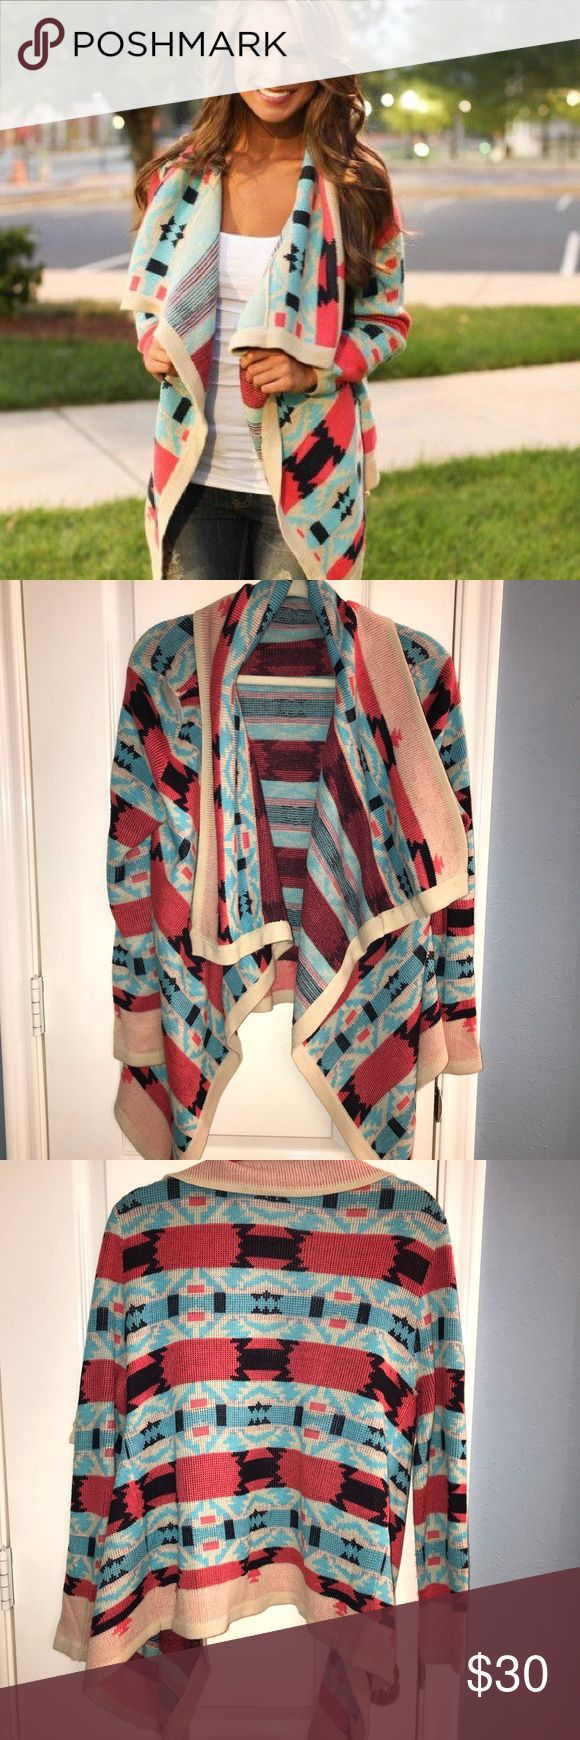 Tribal print cardigan Tribal print cardigan in cream, blue and coral. Warm and cozy with a pop of color for a dreary winter. Size medium. Sweaters Cardigans